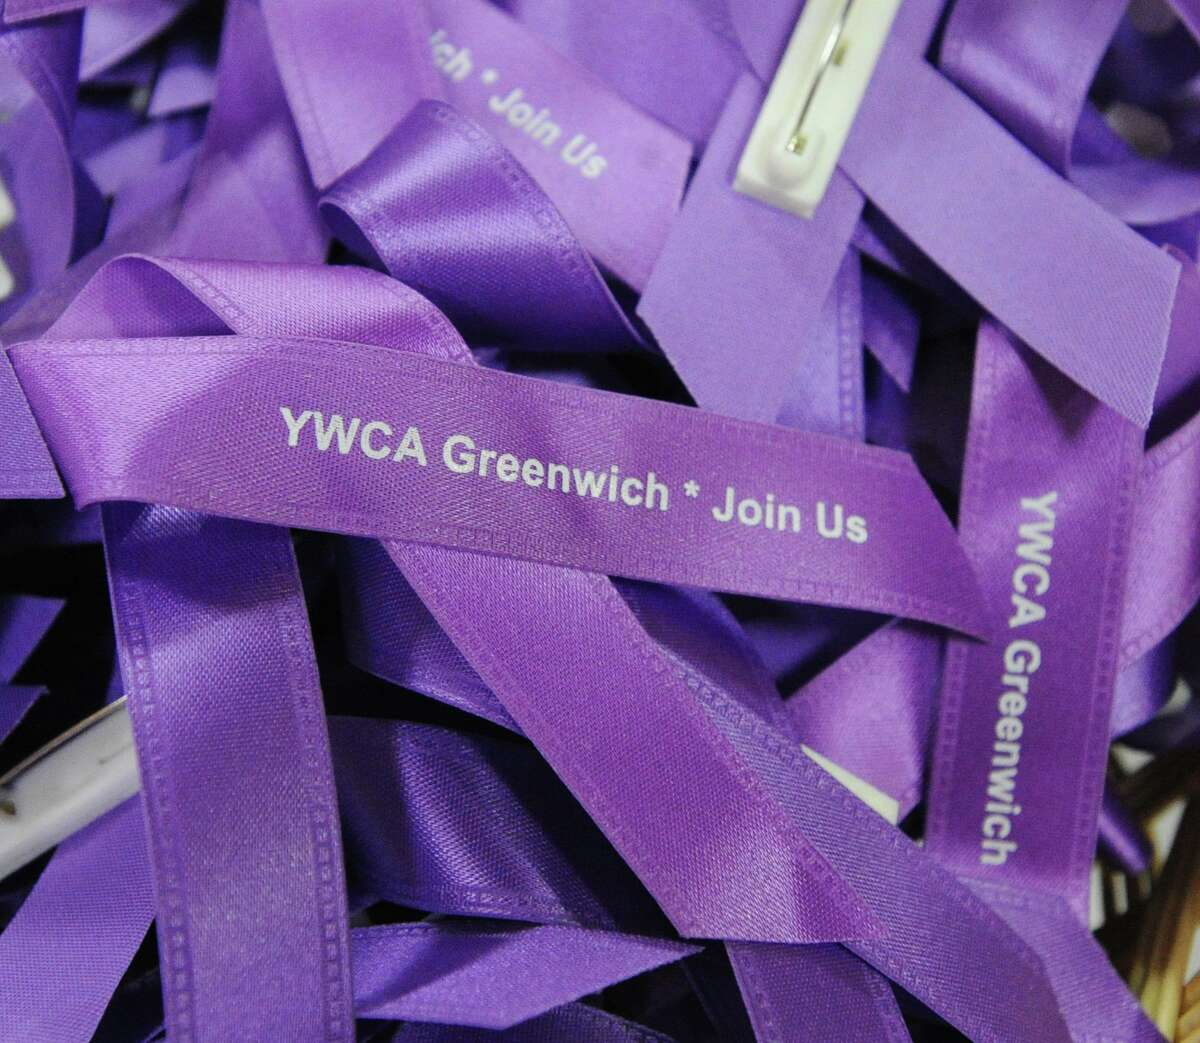 Purple ribbons, part of the domestic violence and abuse prevention initiative, could be seen during the YWCA of Greenwich Domestic Abuse Services annual Candlelight Vigil to honor the victims of domestic violence and abuse at the YWCA of Greenwich, Conn., Tuesday, Oct. 9, 2018. October is Domestic Violence Awareness Month.